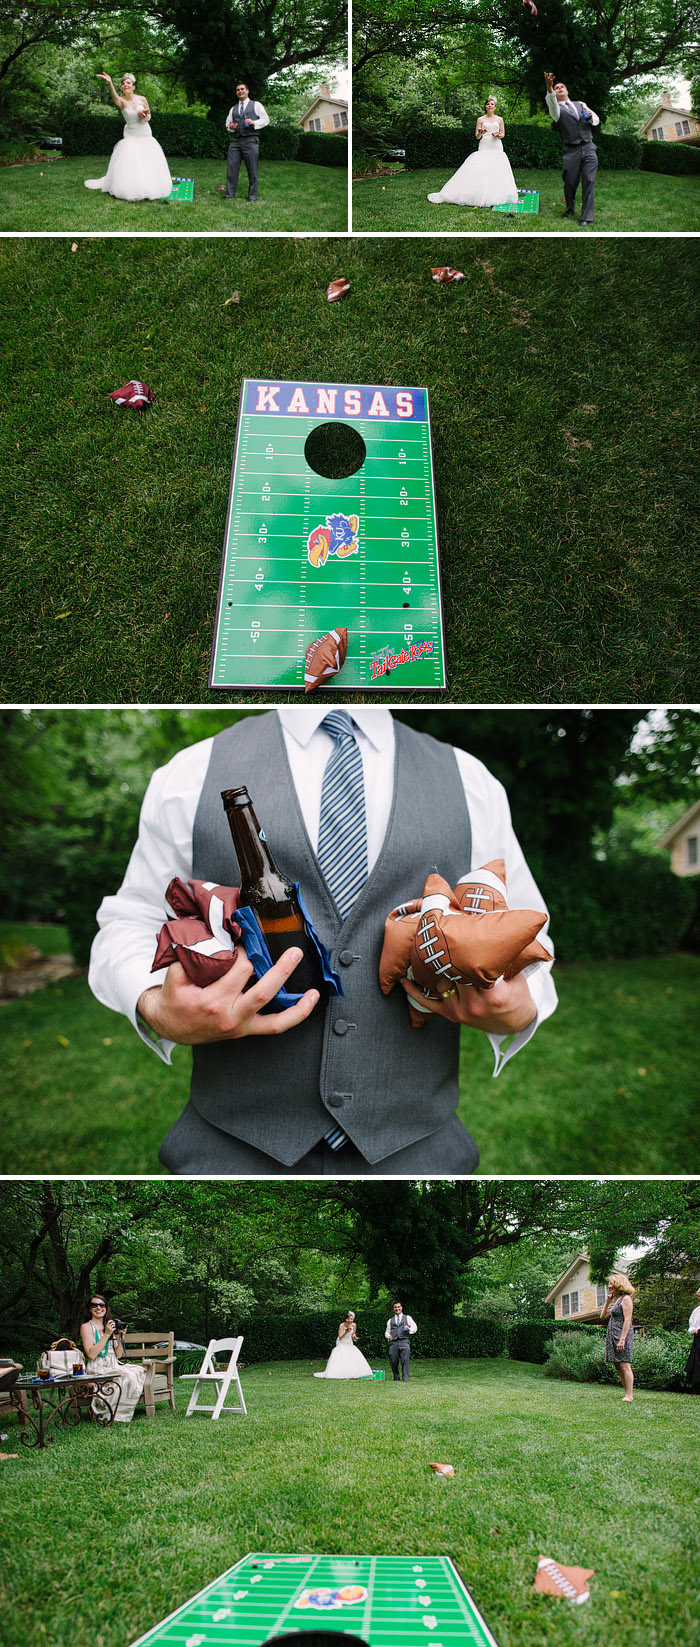 Fun lawn games at an Evan Williams House wedding reception.